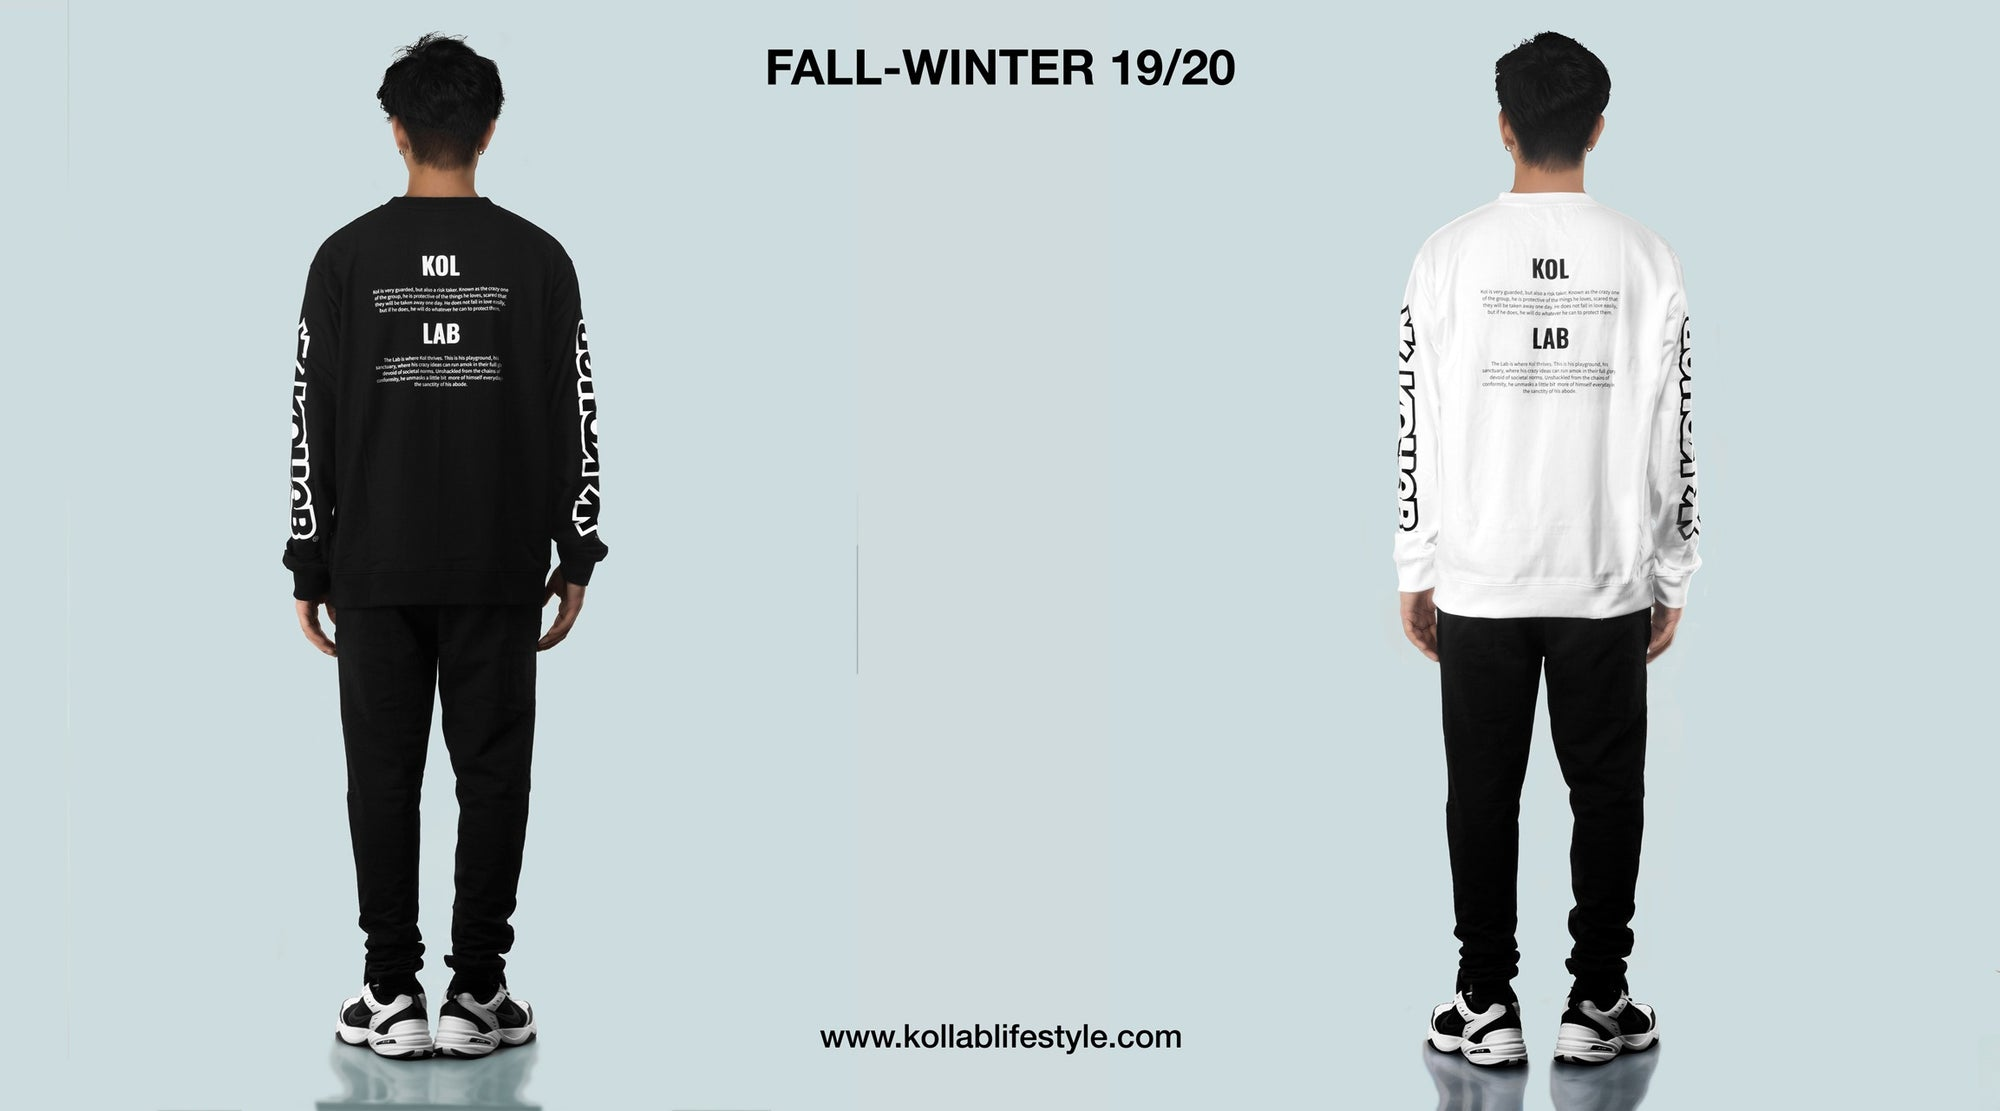 Kollab® Fall-Winter 19/20 Collection | Protagonist L/S Sweatshirts - Slideshow | www.kollablifestyle.com